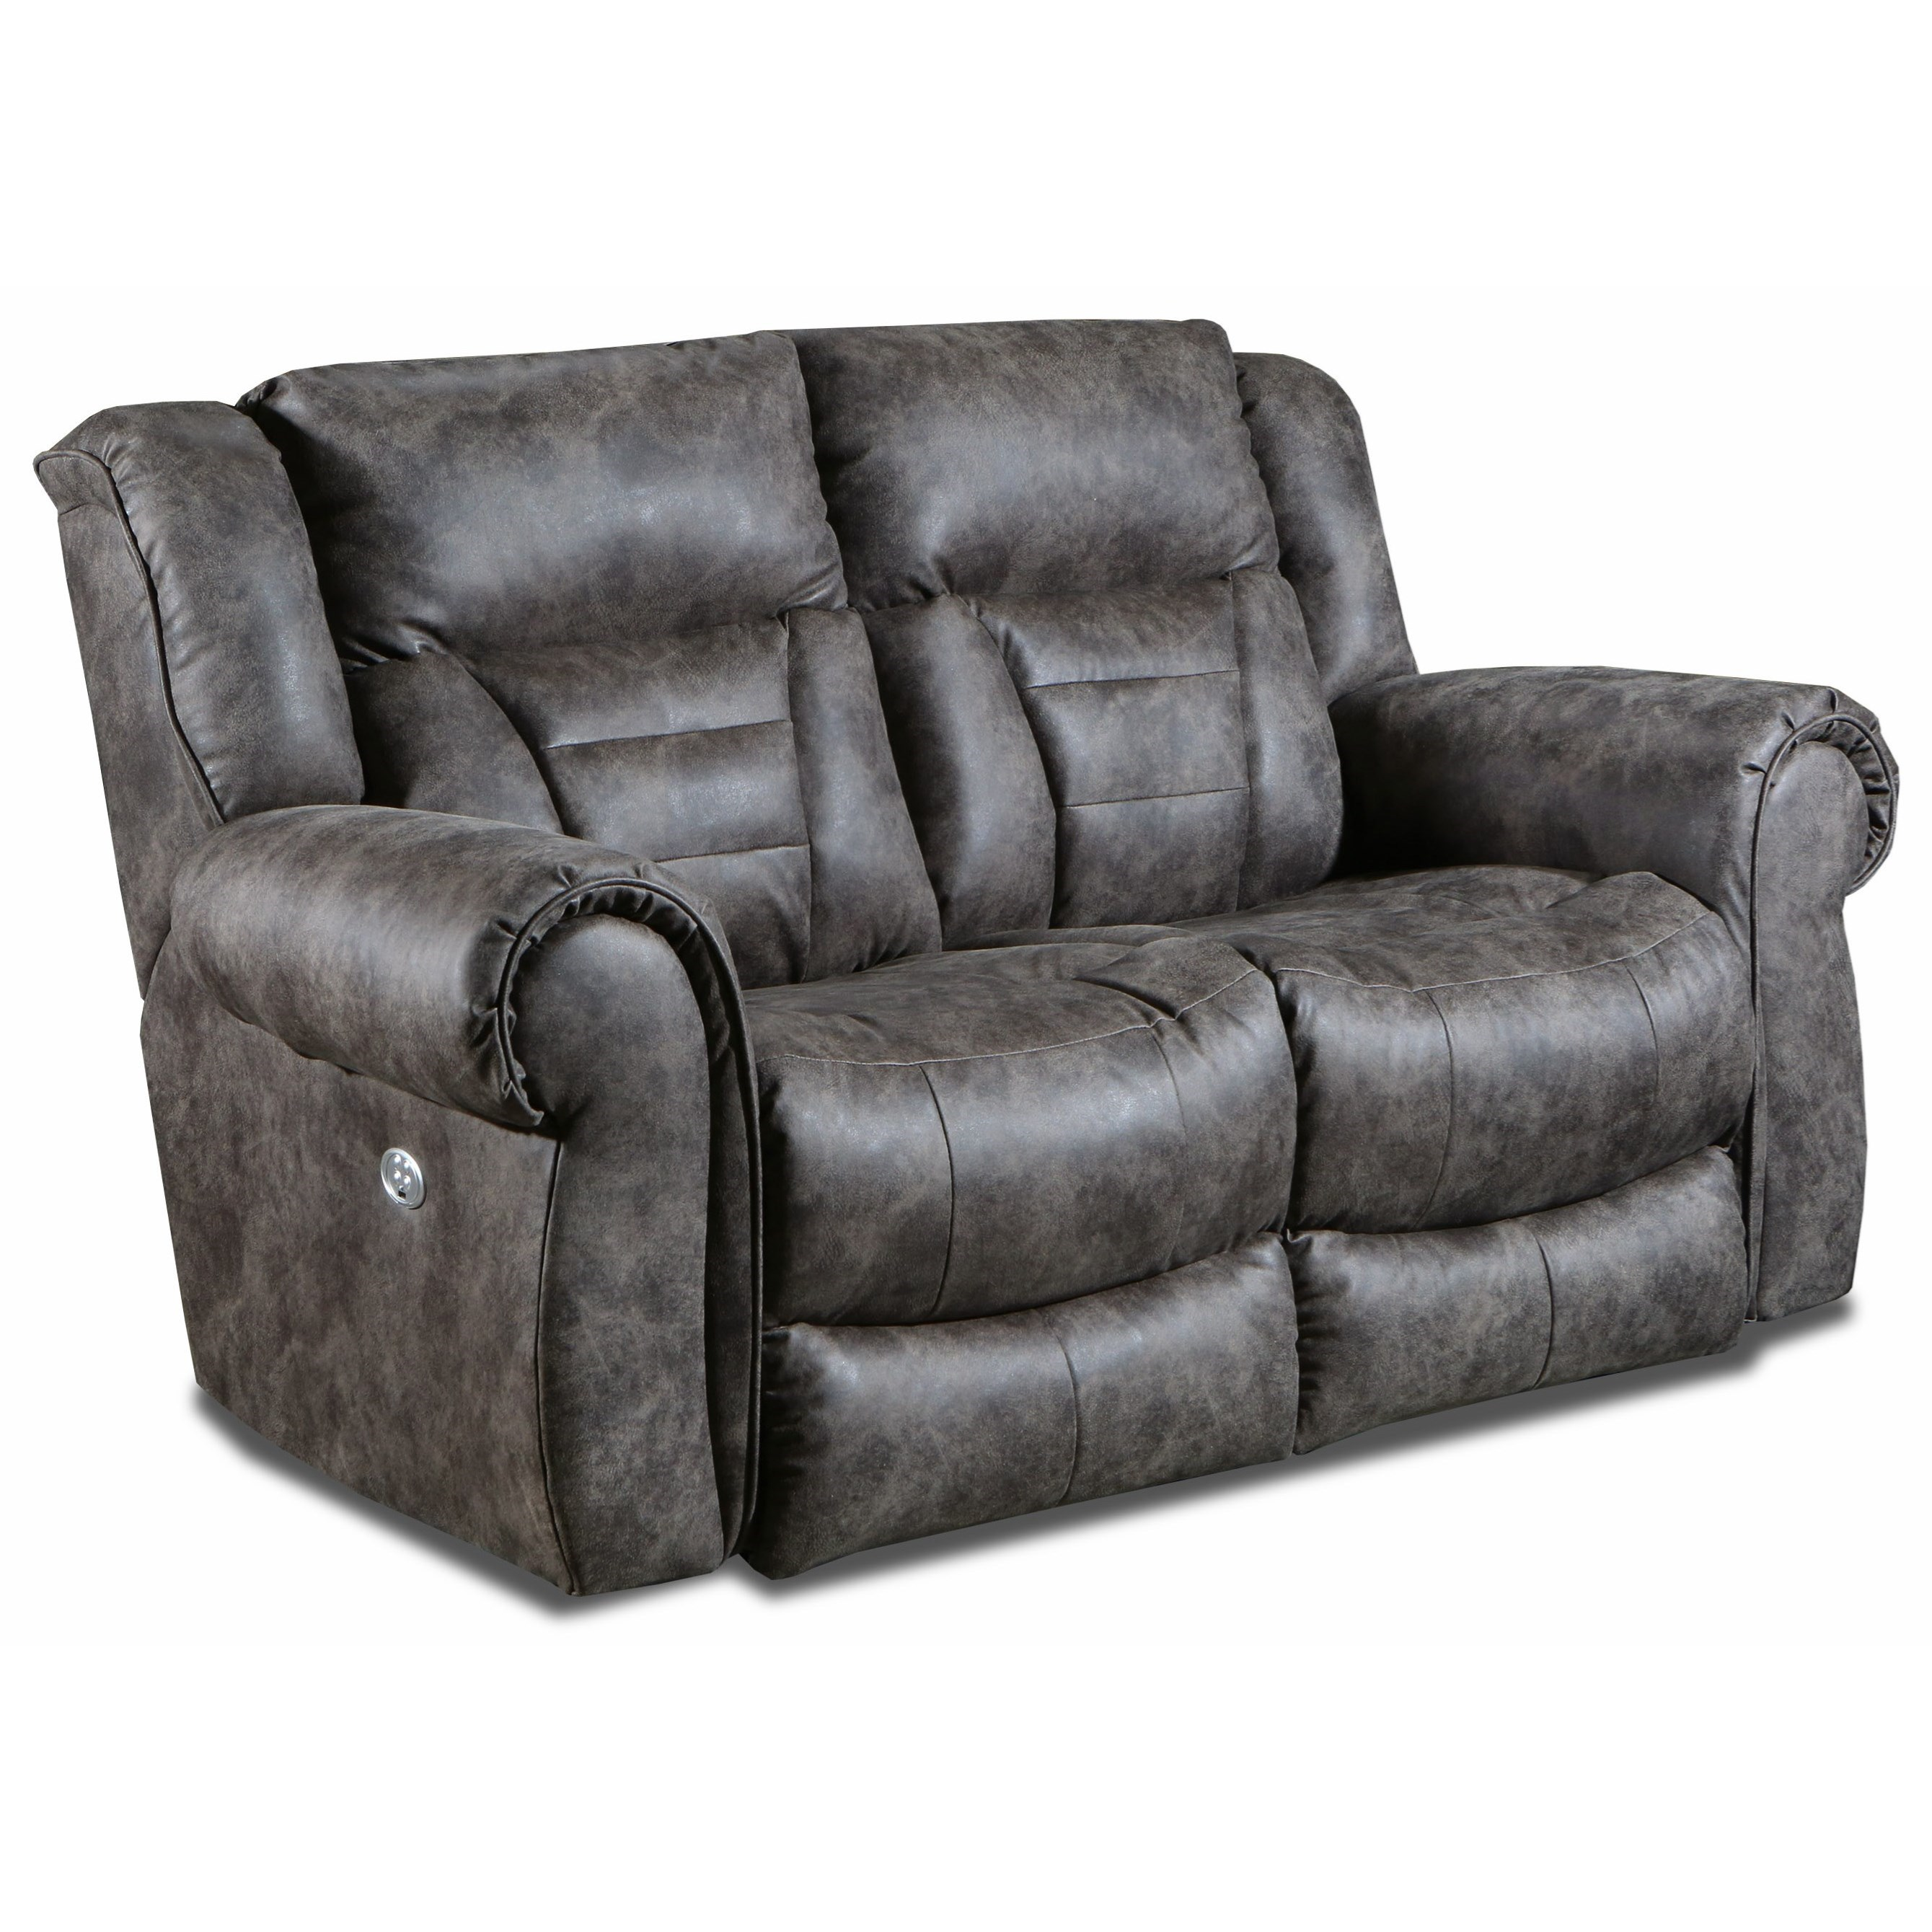 Titan Power Headrest Double Reclining Loveseat by Design2Recline at Michael Alan Furniture & Design